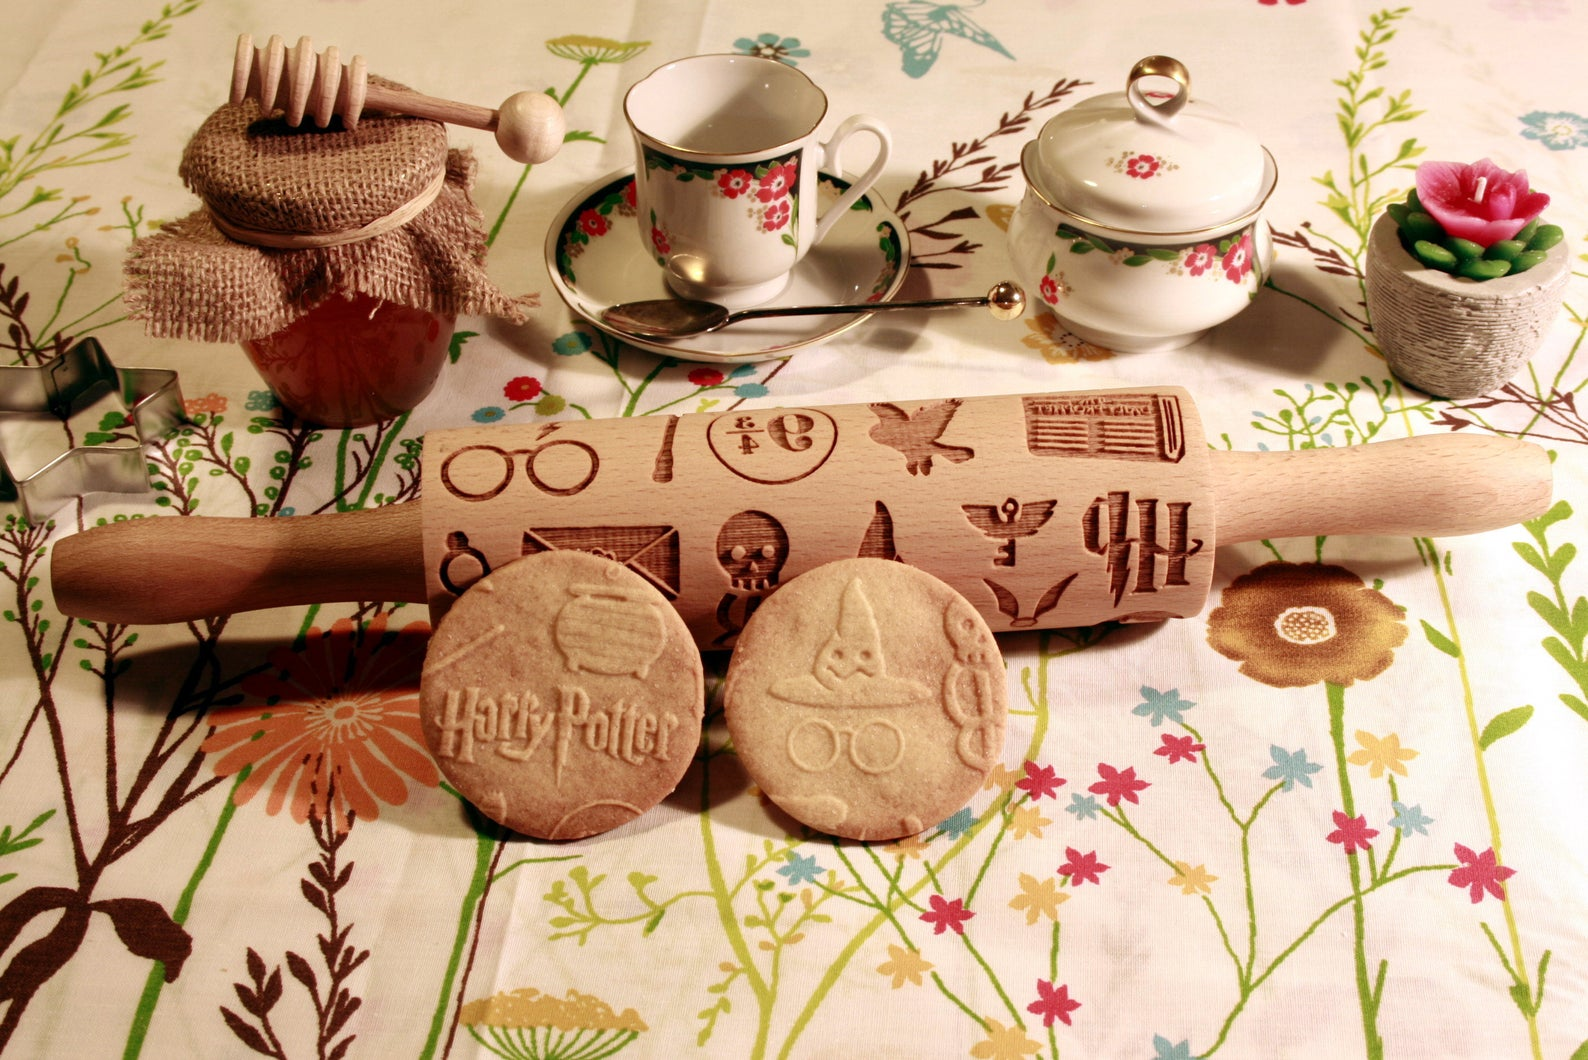 [Image description: a rolling pin engraved with Harry Potter symbols and two cookies embossed with some of the symbols] via Etsy